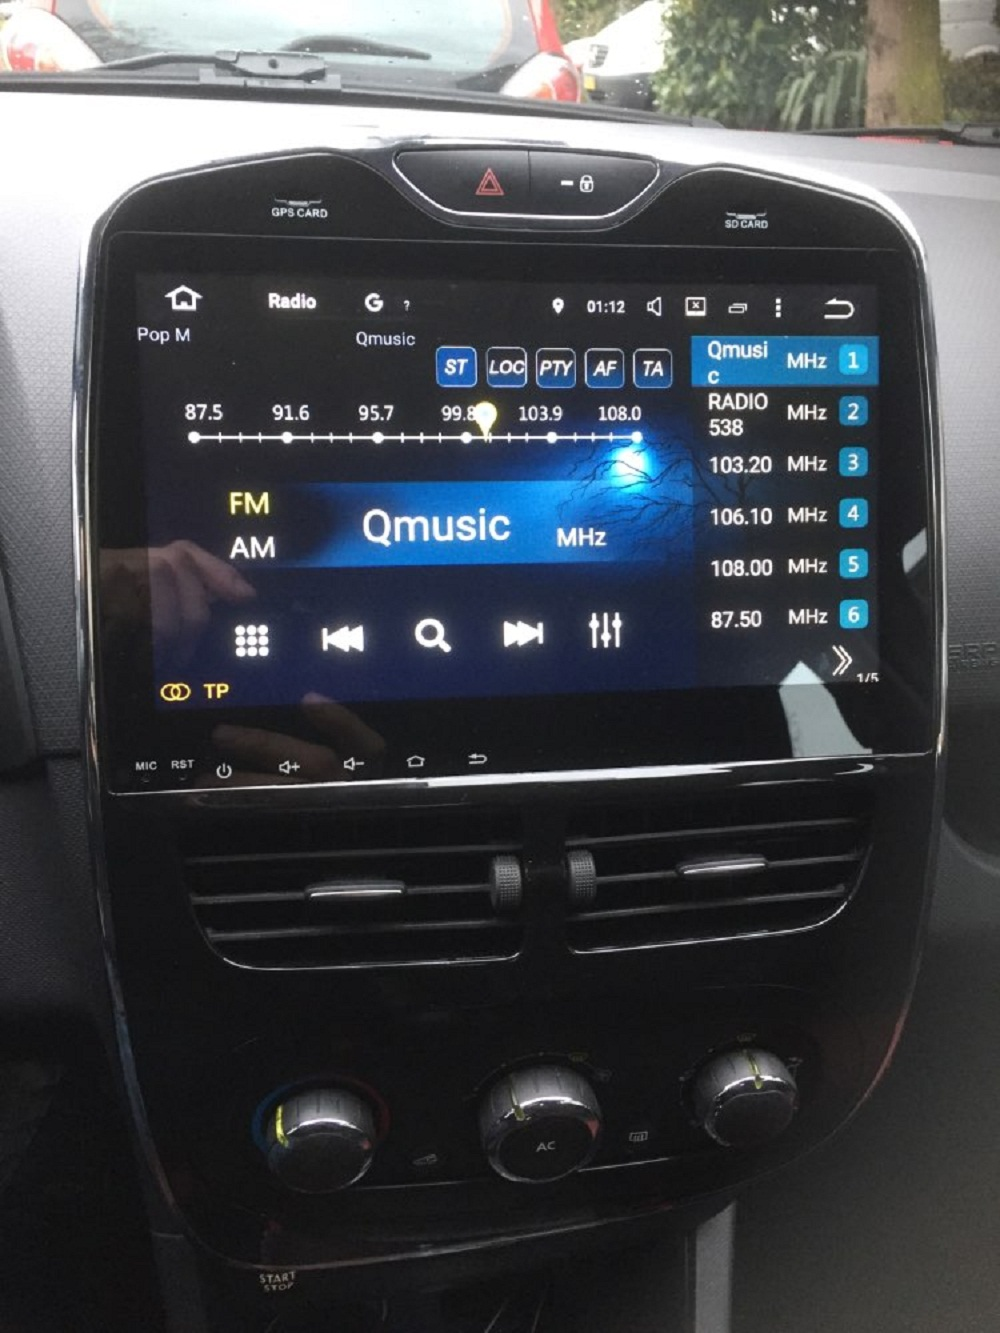 4gb ram 10 1 android 8 0 car radio audio gps for renault. Black Bedroom Furniture Sets. Home Design Ideas